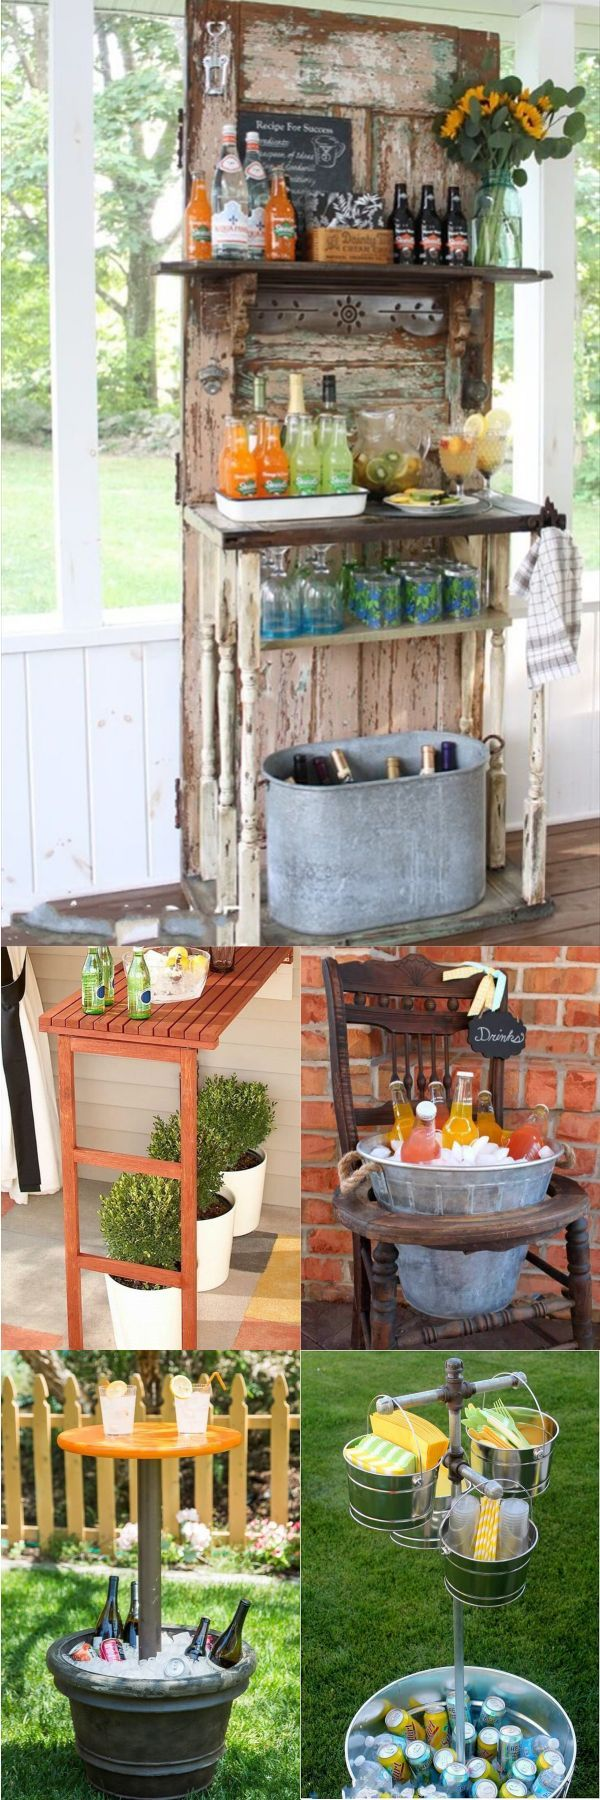 best 25 diy outdoor bar ideas on pinterest deck decorating outdoor bar furniture and outdoor patio decorating - Diy Patio Bar Ideas